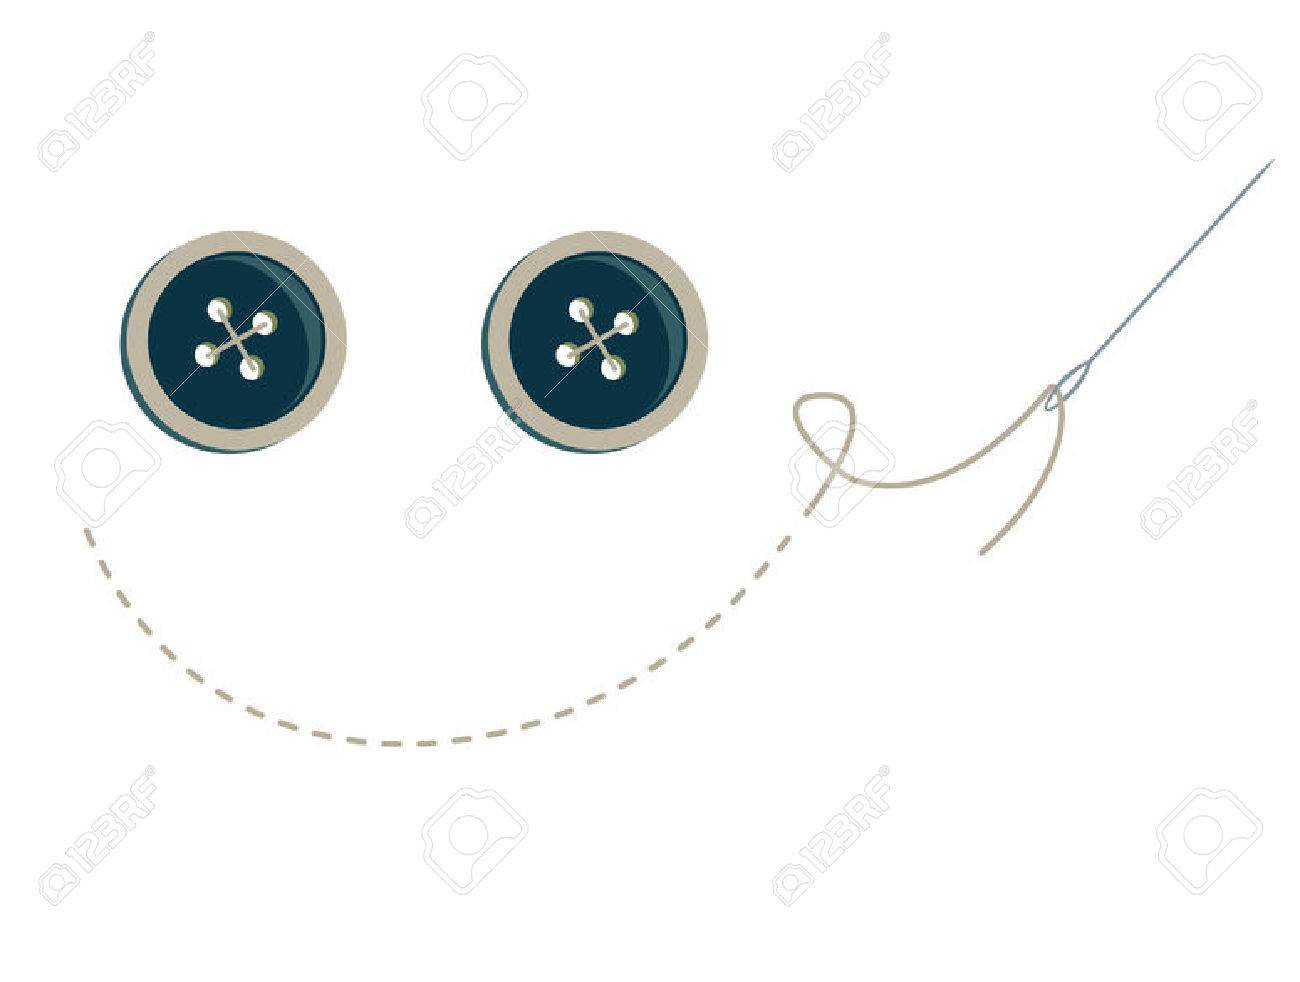 blue buttons with stitching and needle making a smiley face - 6468196